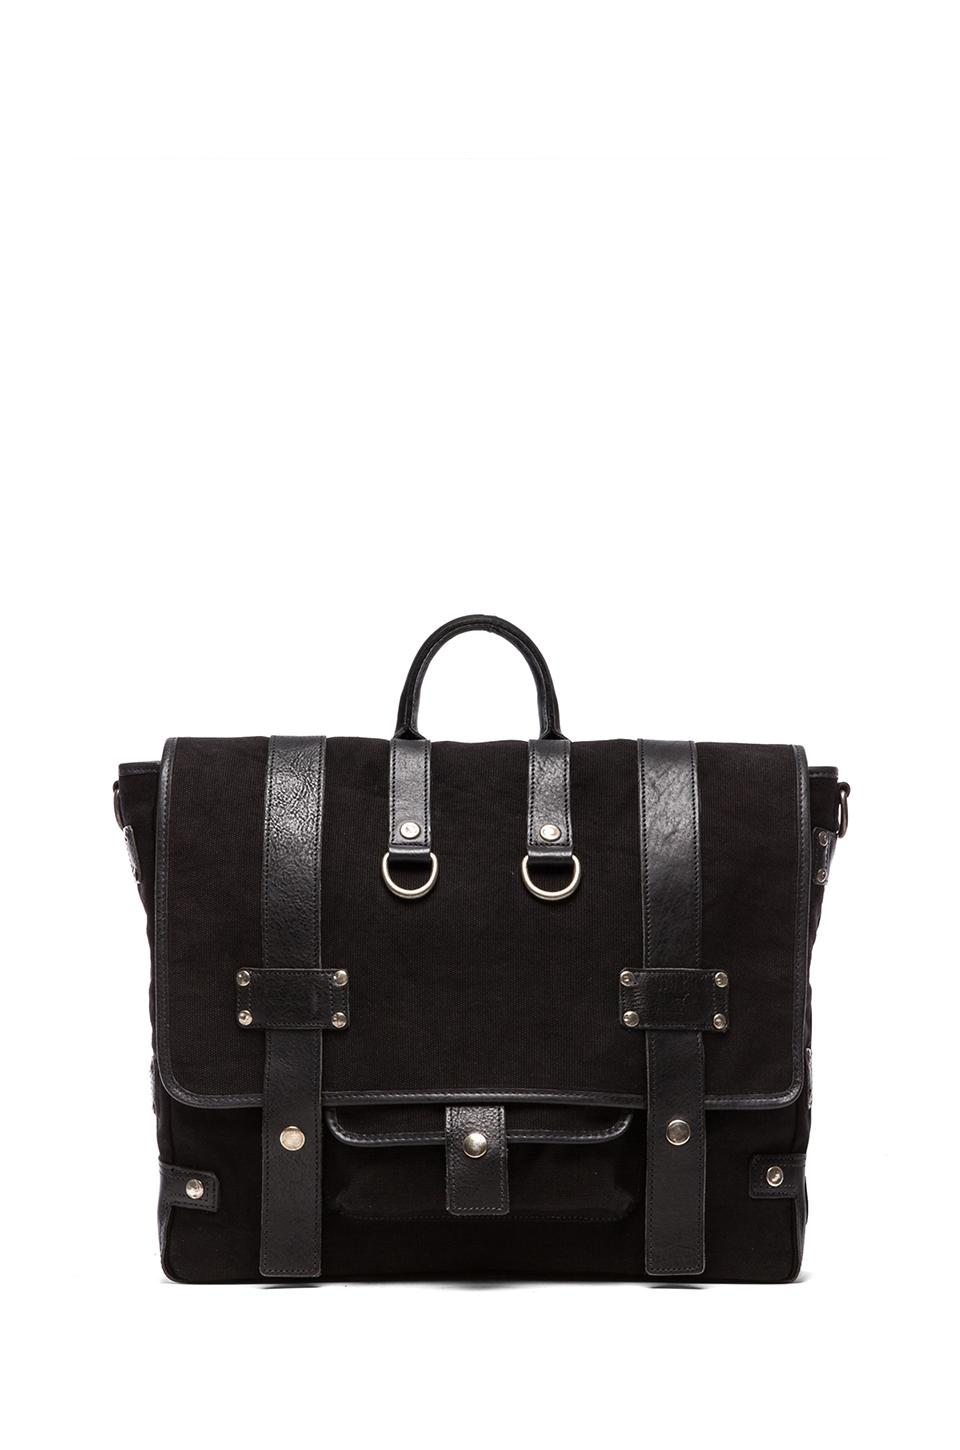 WILL Leather Goods Hopper Canvas and Leather Bag in Black/Black